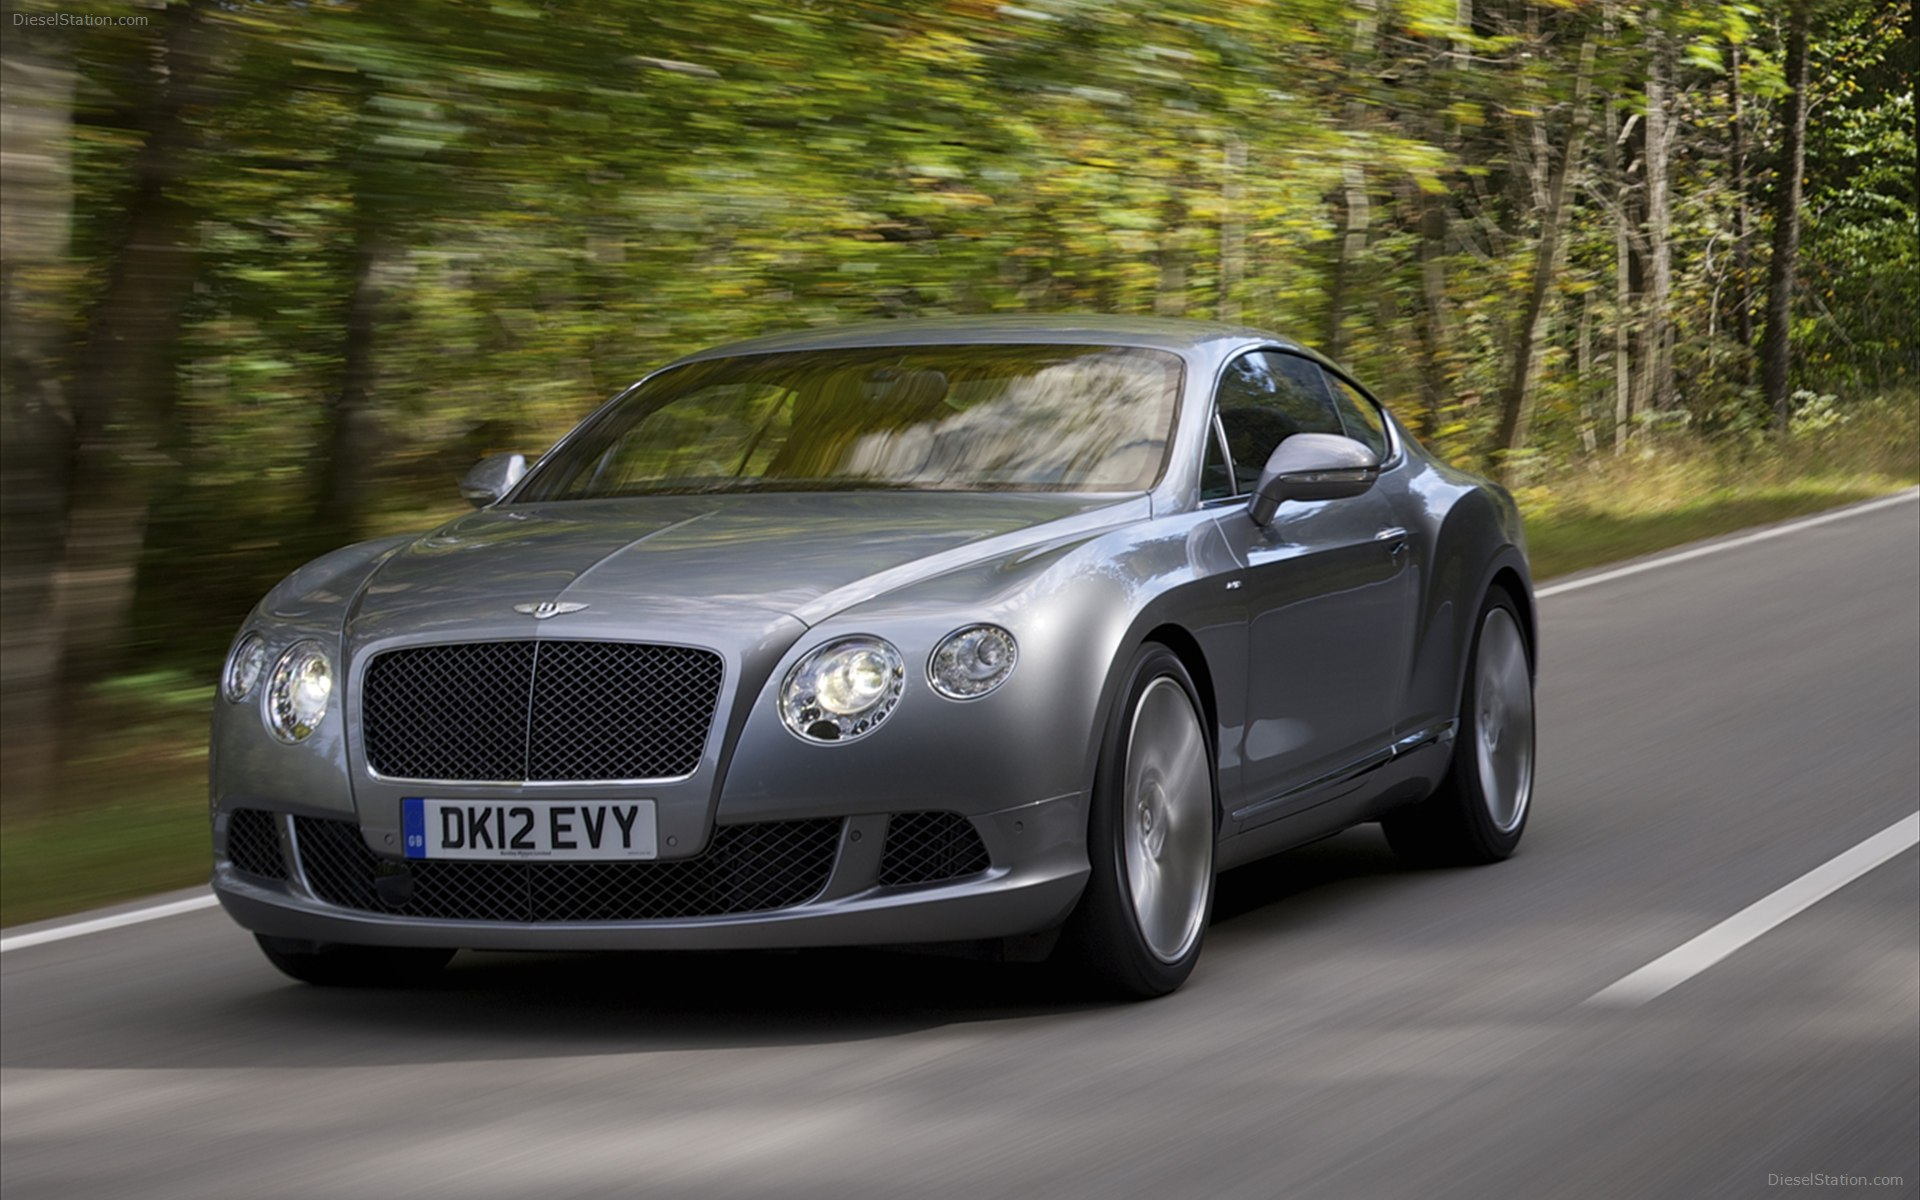 Bentley-Continental-GT-Speed-wallpaper-wp424046-1